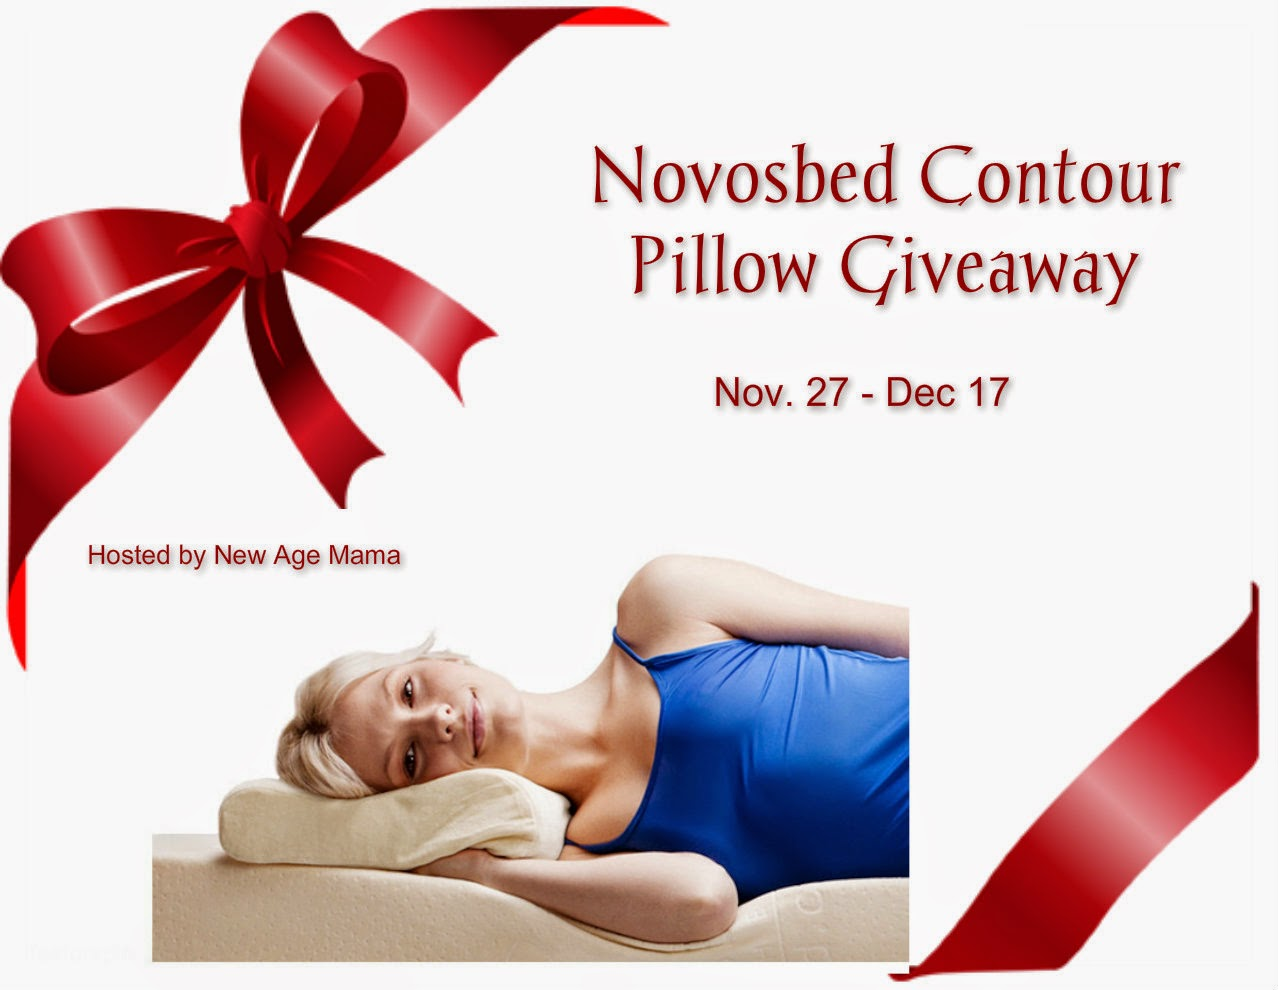 Enter the Novosbed Contour Pillow Giveaway. Ends 12/17.